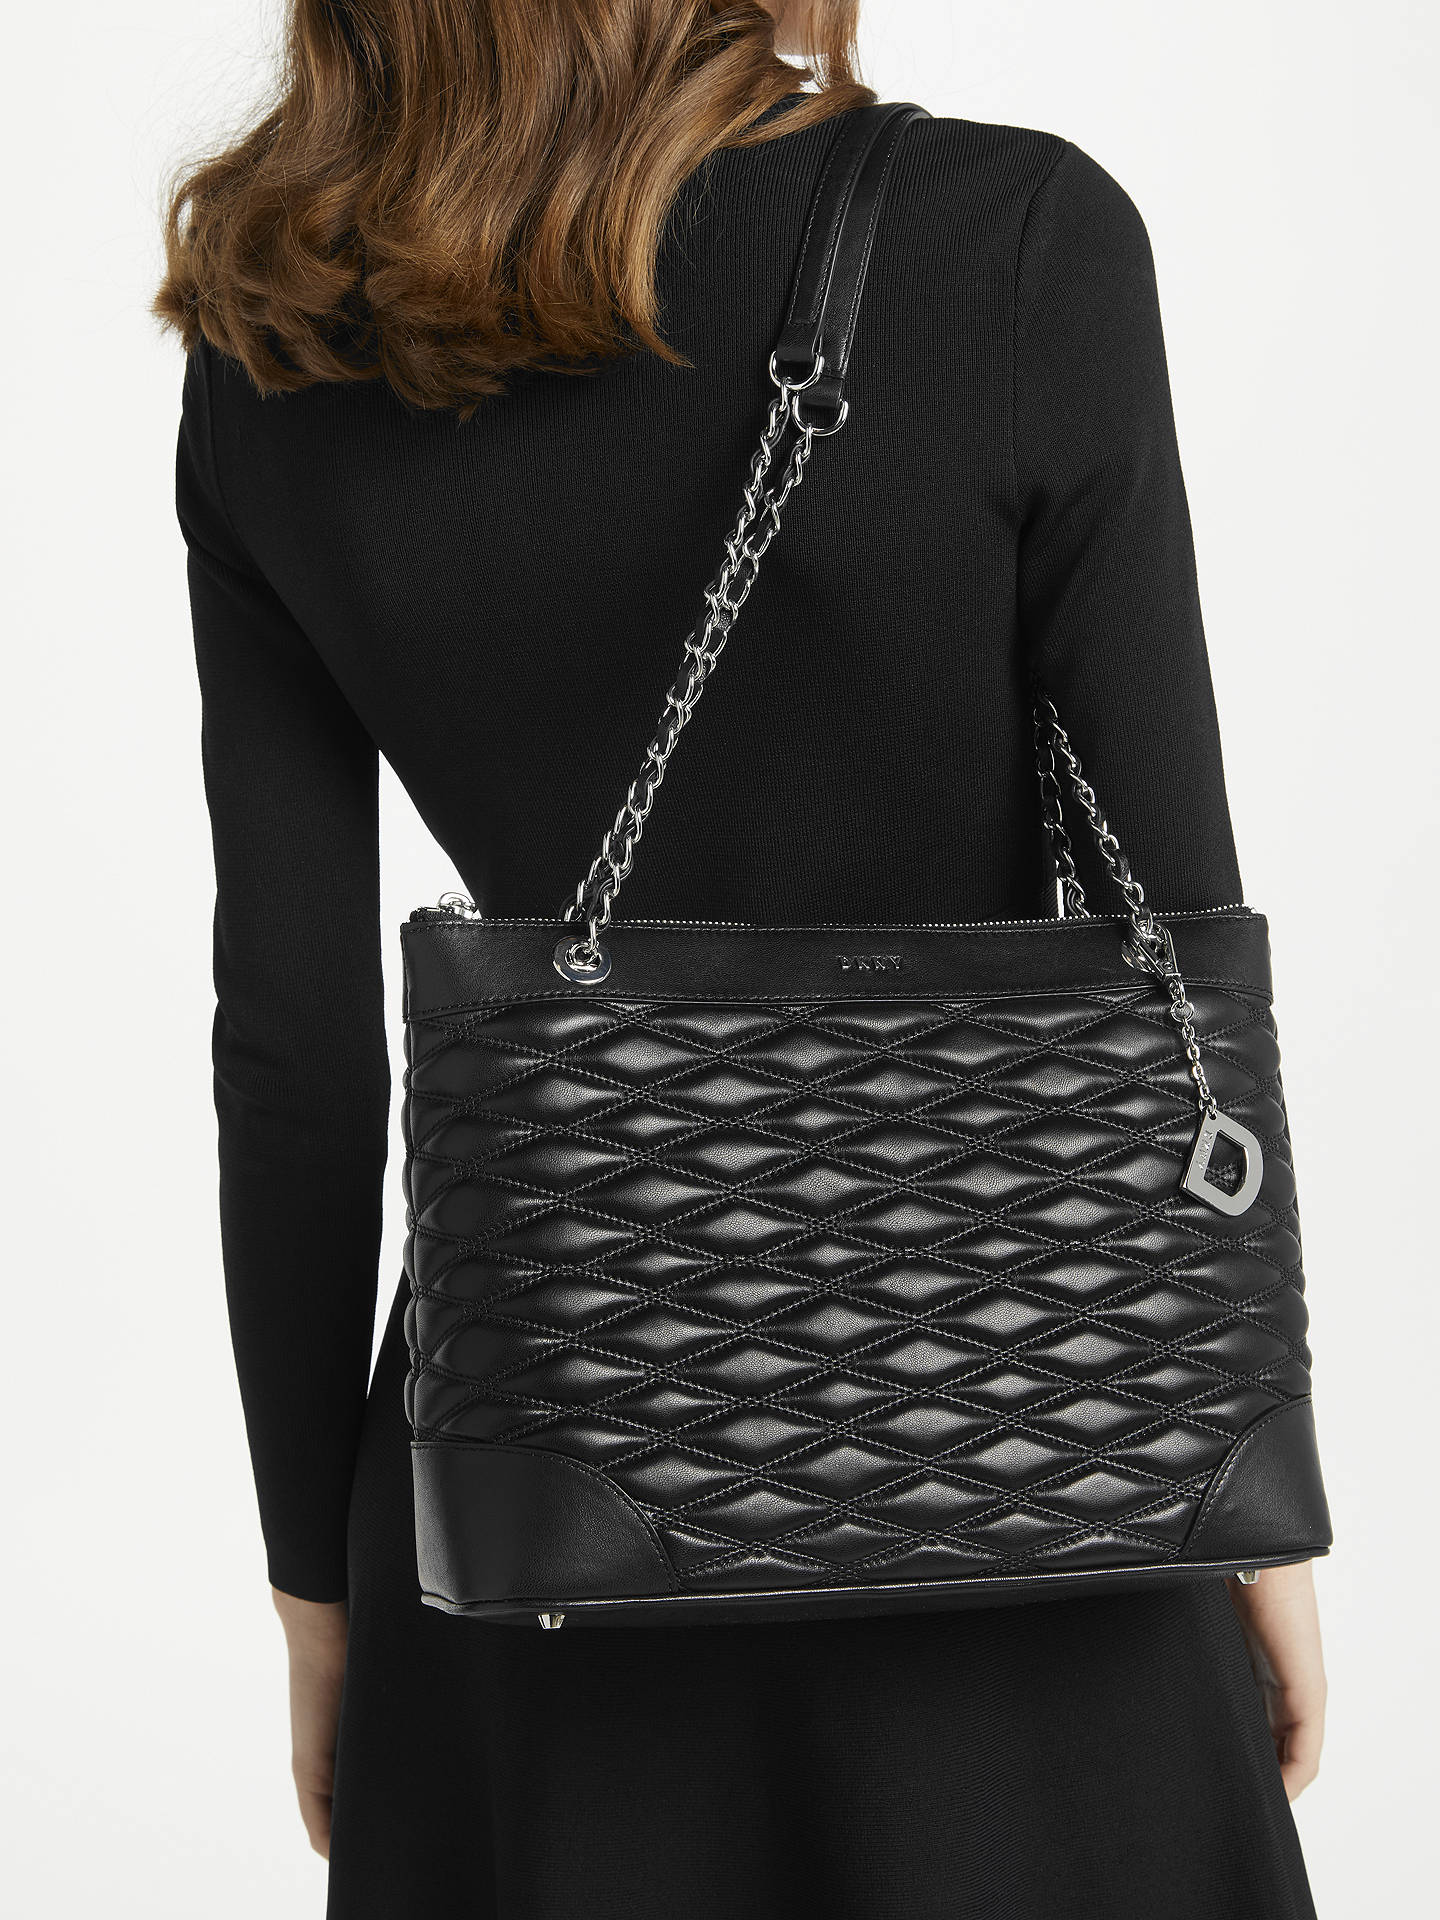 9d2cbc56d0b Dkny Quilted Black Tote Bag - G. M. Luico Enologia